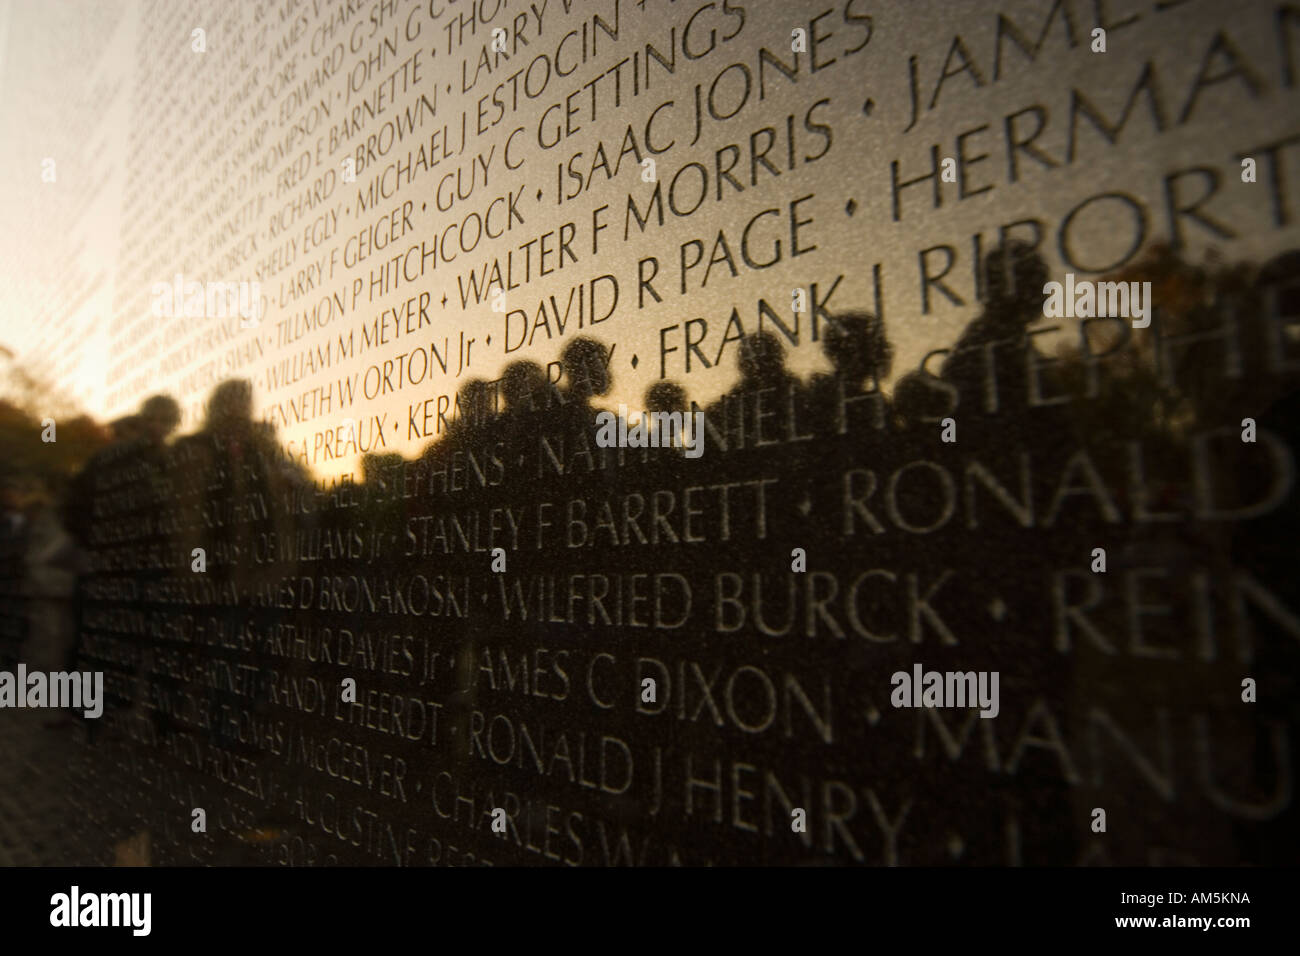 washington-vietnam-memorial-washington-vietnam-veterans-war-memorial-AM5KNA.jpg